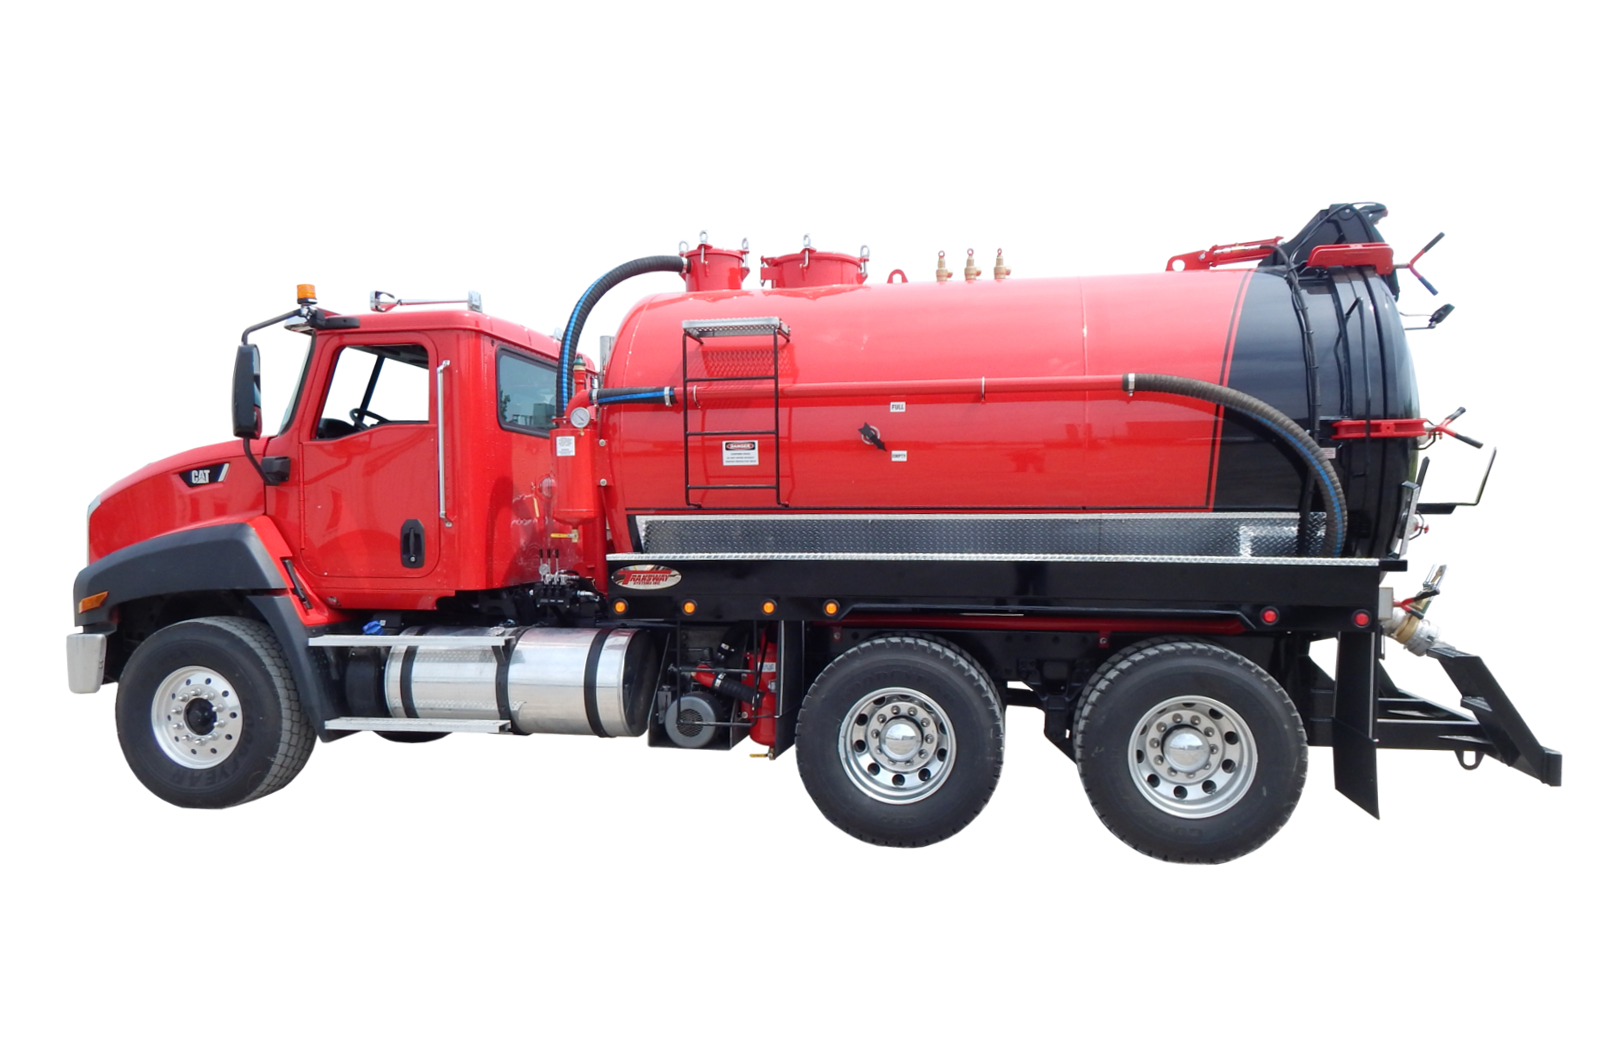 Blower Pumps For Trucks : Hydro excavation trucks septic tank pump vacuum